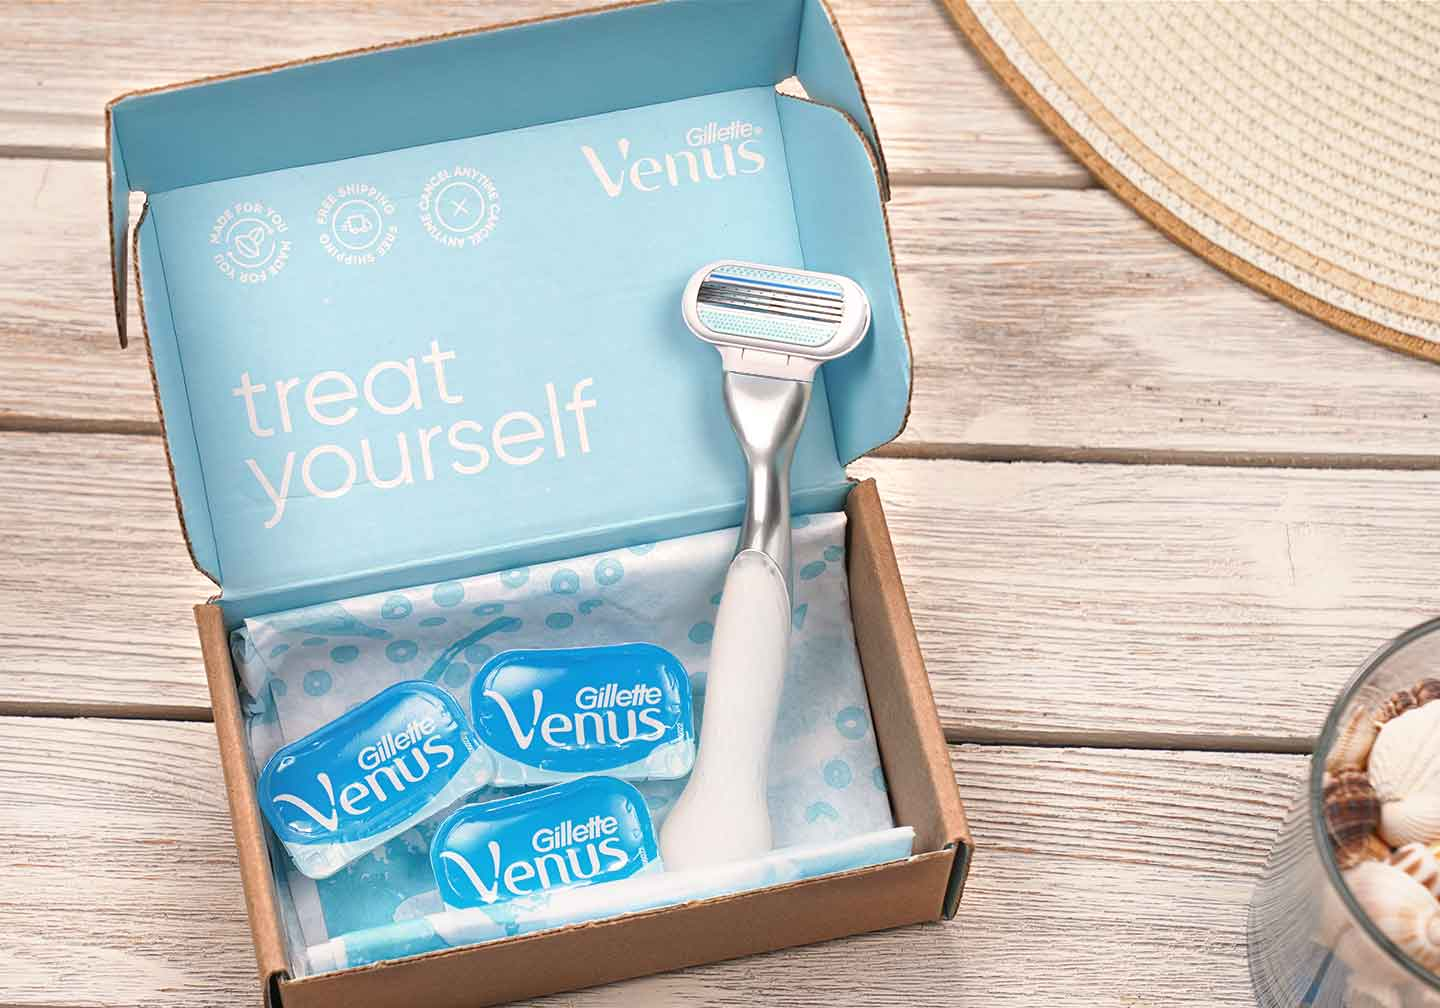 Customize your shave with Venus blades and how often you shave